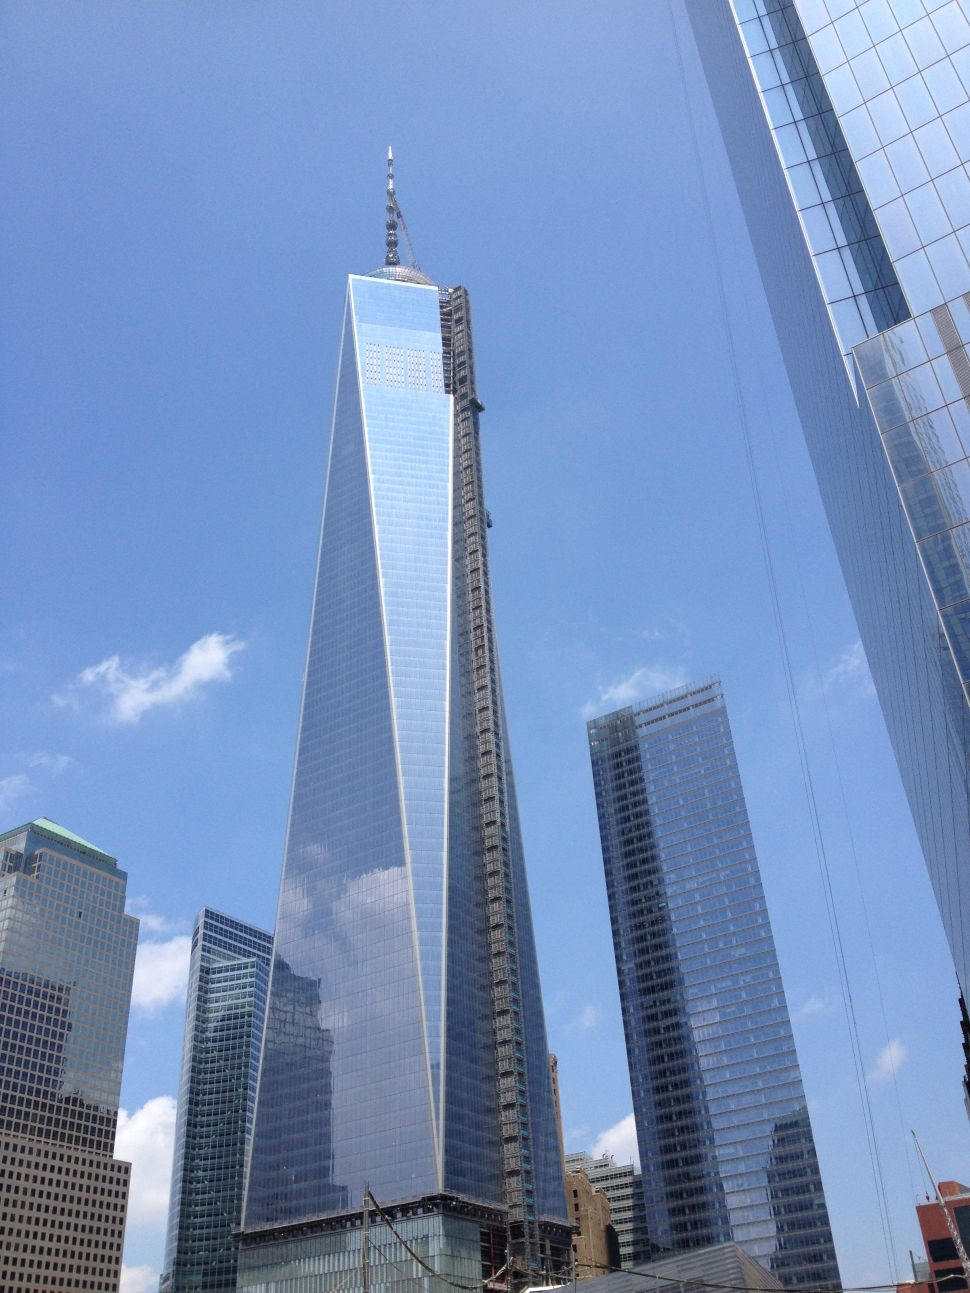 On the Market: Conde Nast's Reduced Circumstances at 1WTC; Where is Mitchell Silver?